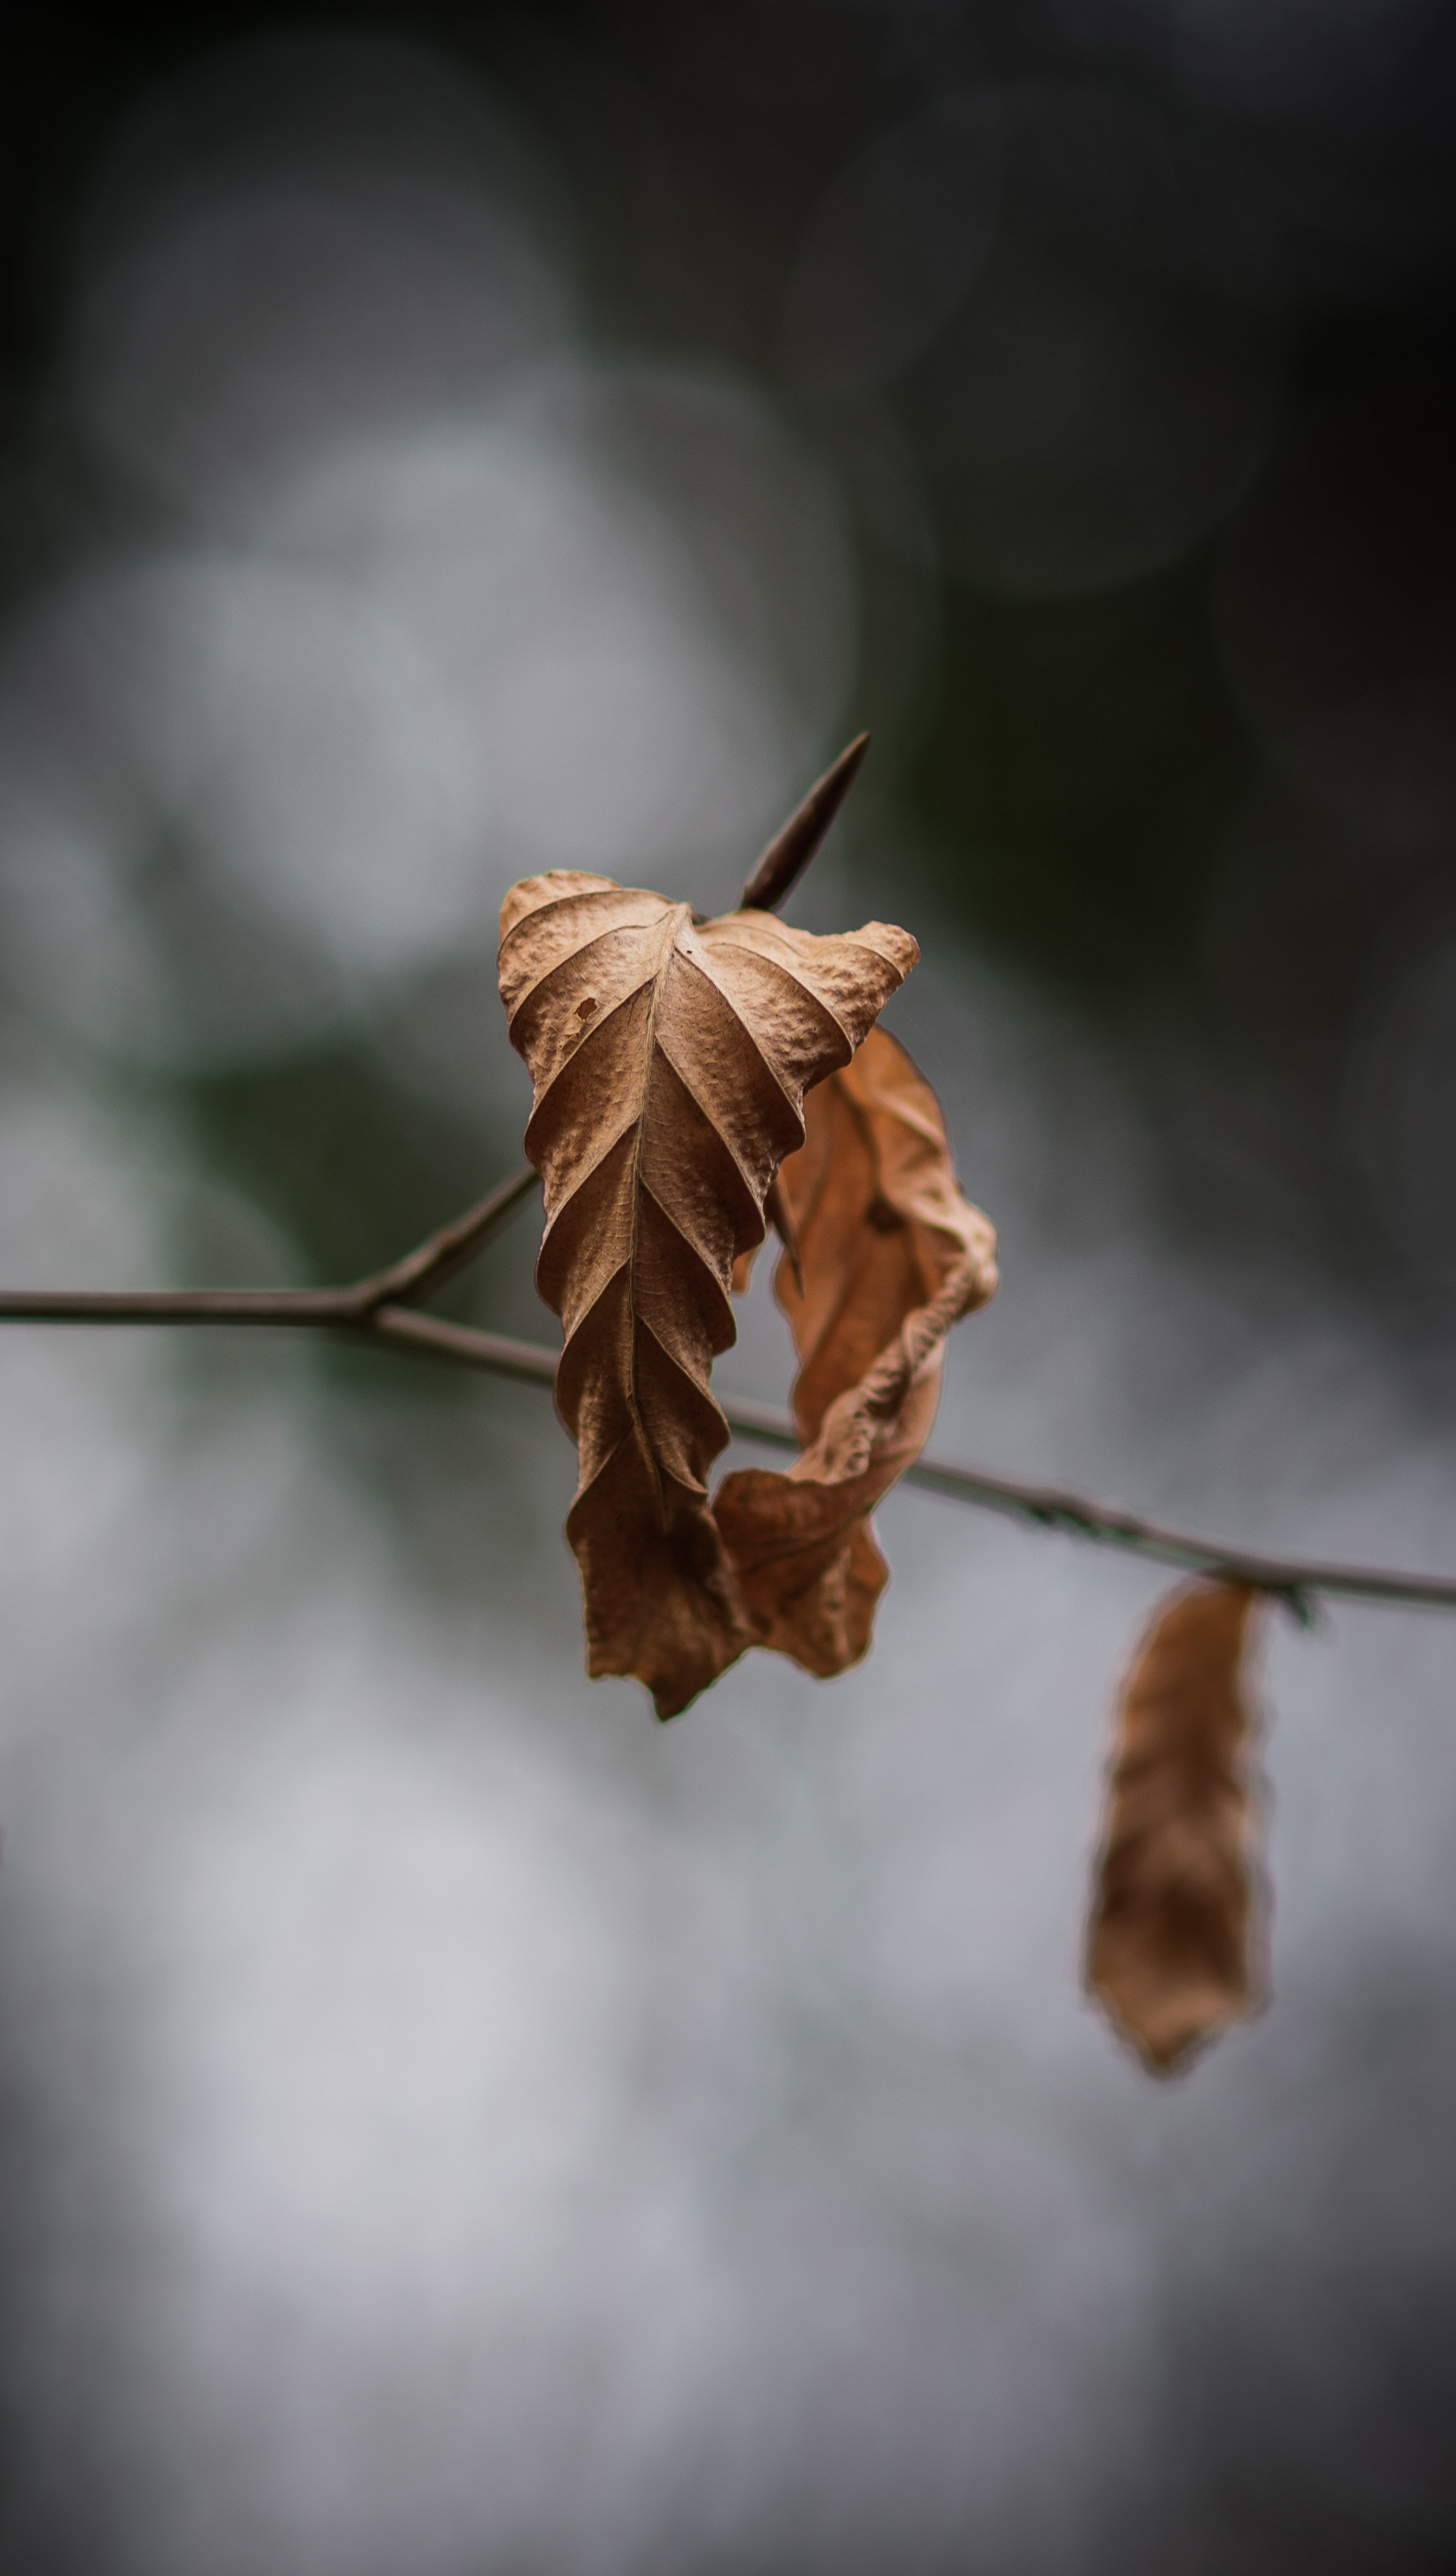 closeup photography of dried leaf